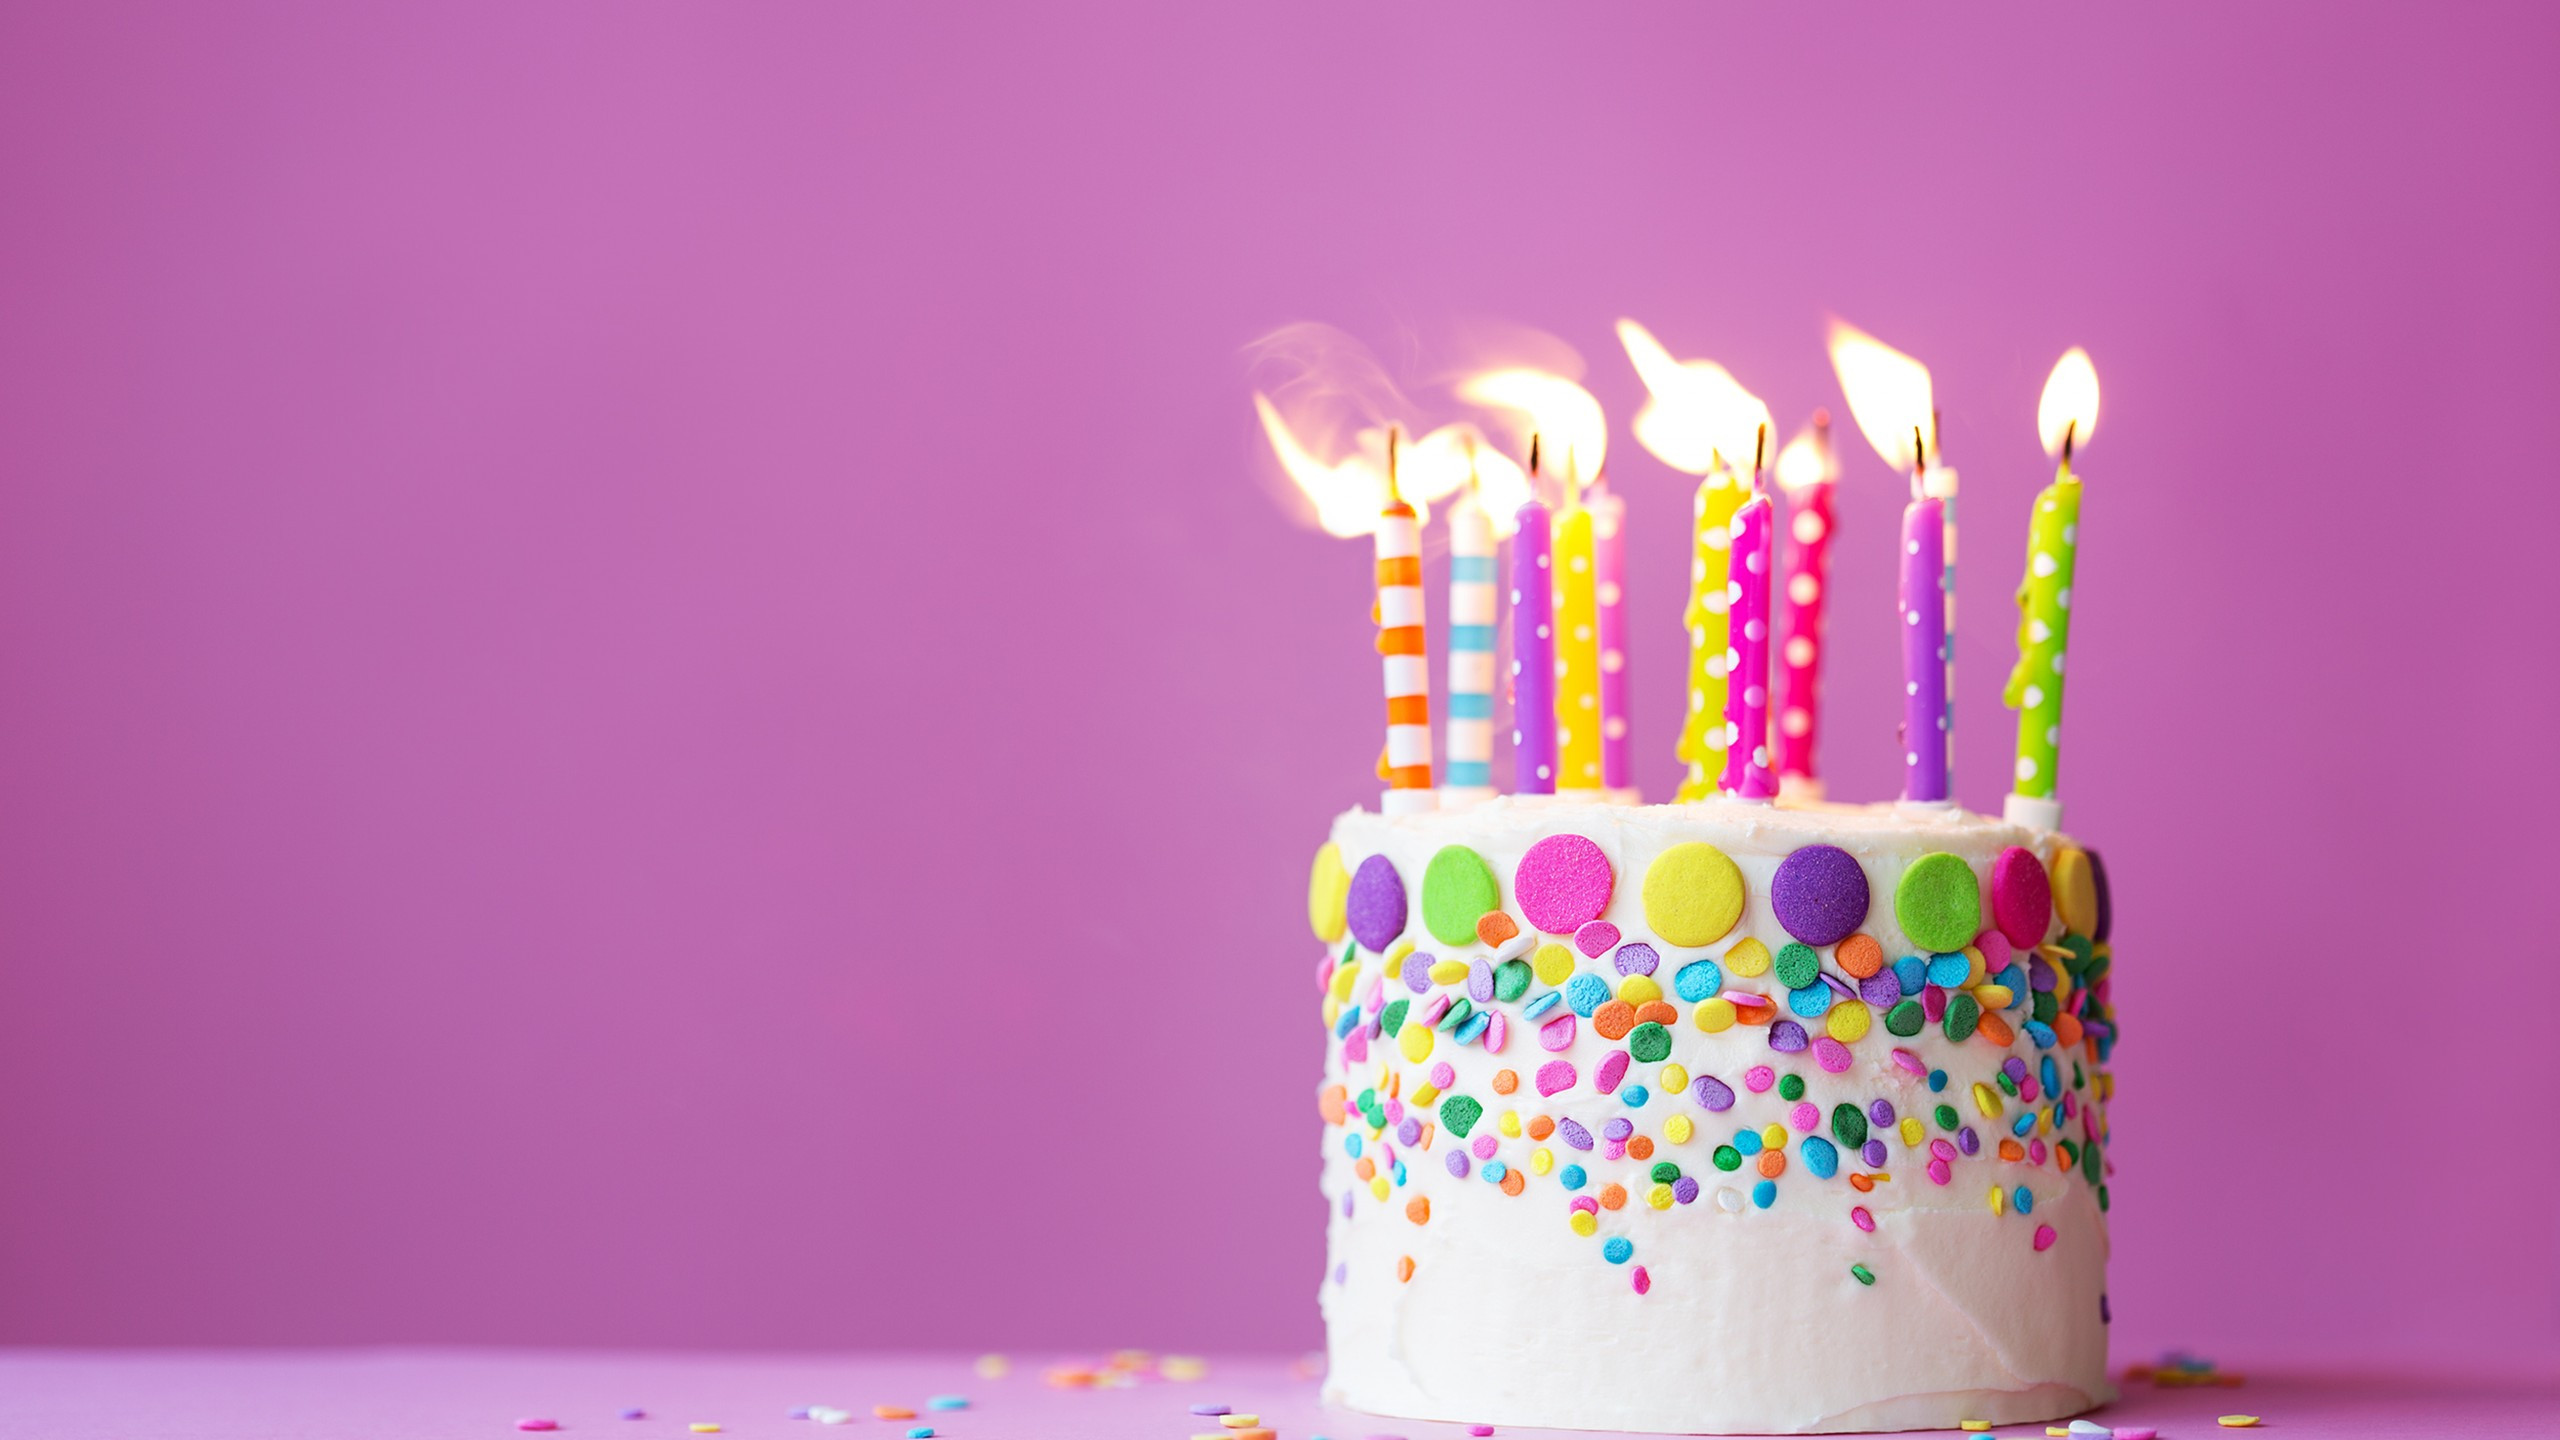 Best ideas about Birthday Cake Wallpaper . Save or Pin Wallpaper Birthday Cake Candles Party Celebrations 607 Now.